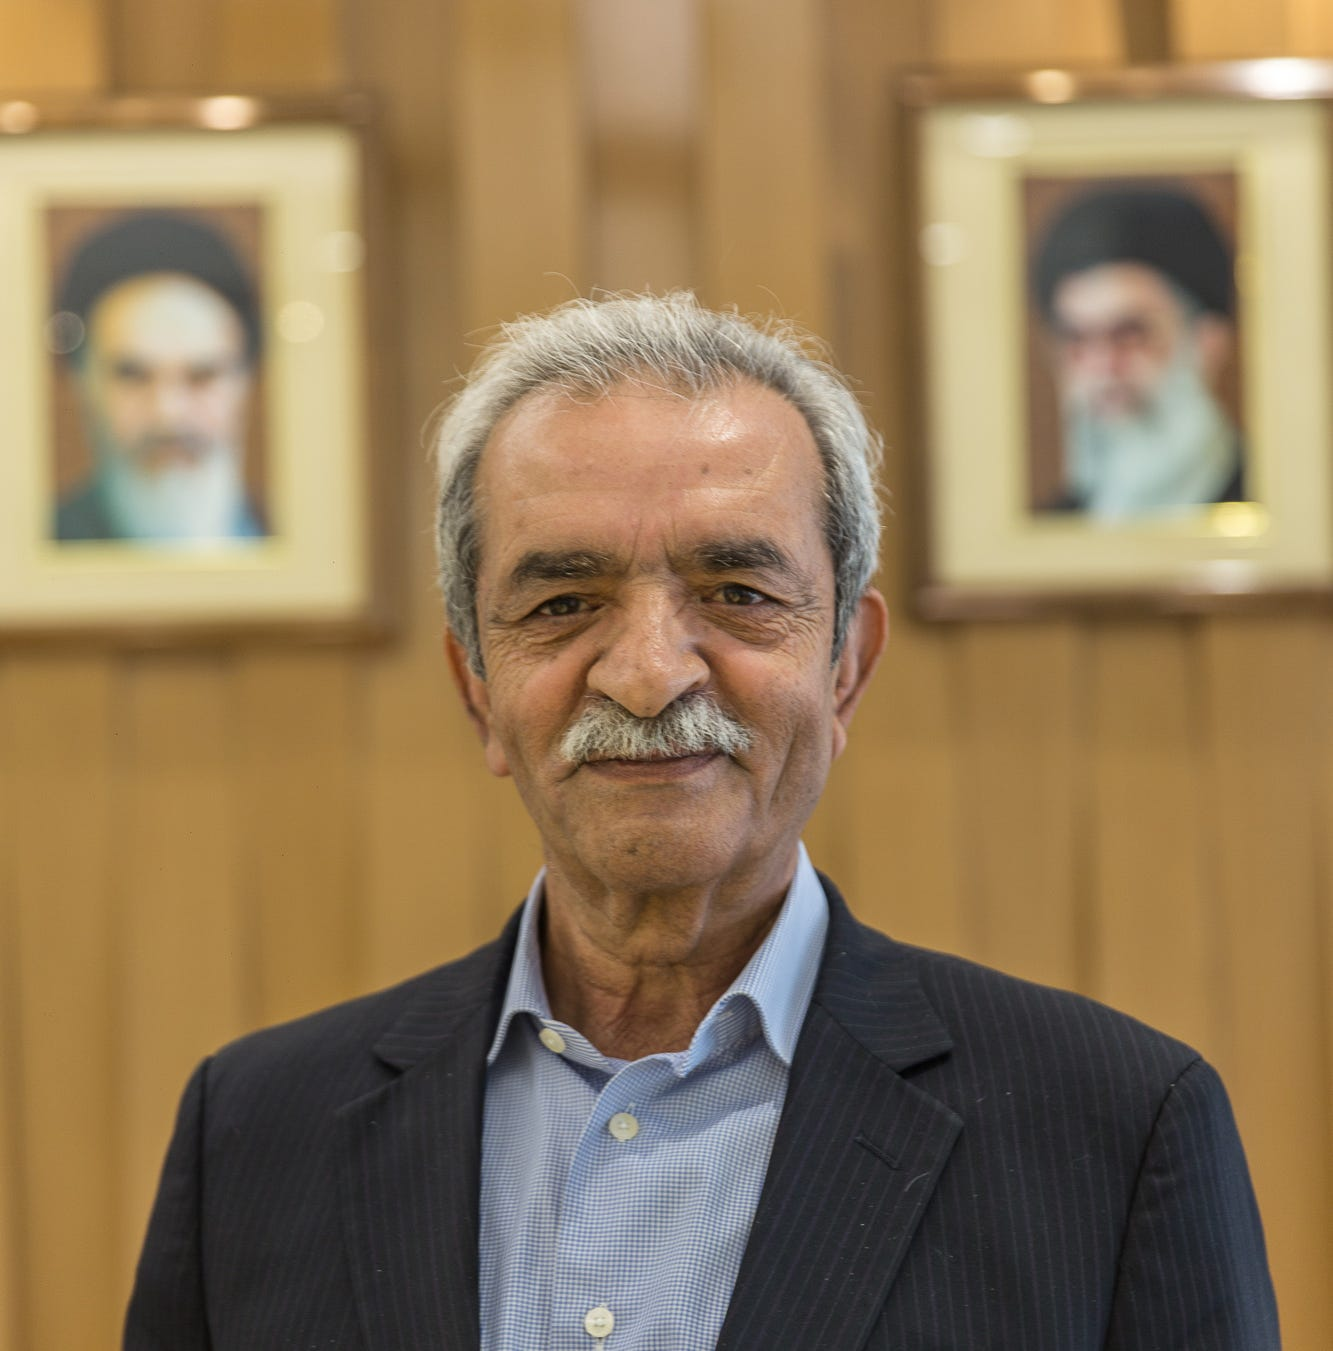 Gholam Hossein Shafei, president of Iran's chamber of commerce, says he expects that foreign investment, economic growth and tourism will suffer because of renewed U.S. sanctions.